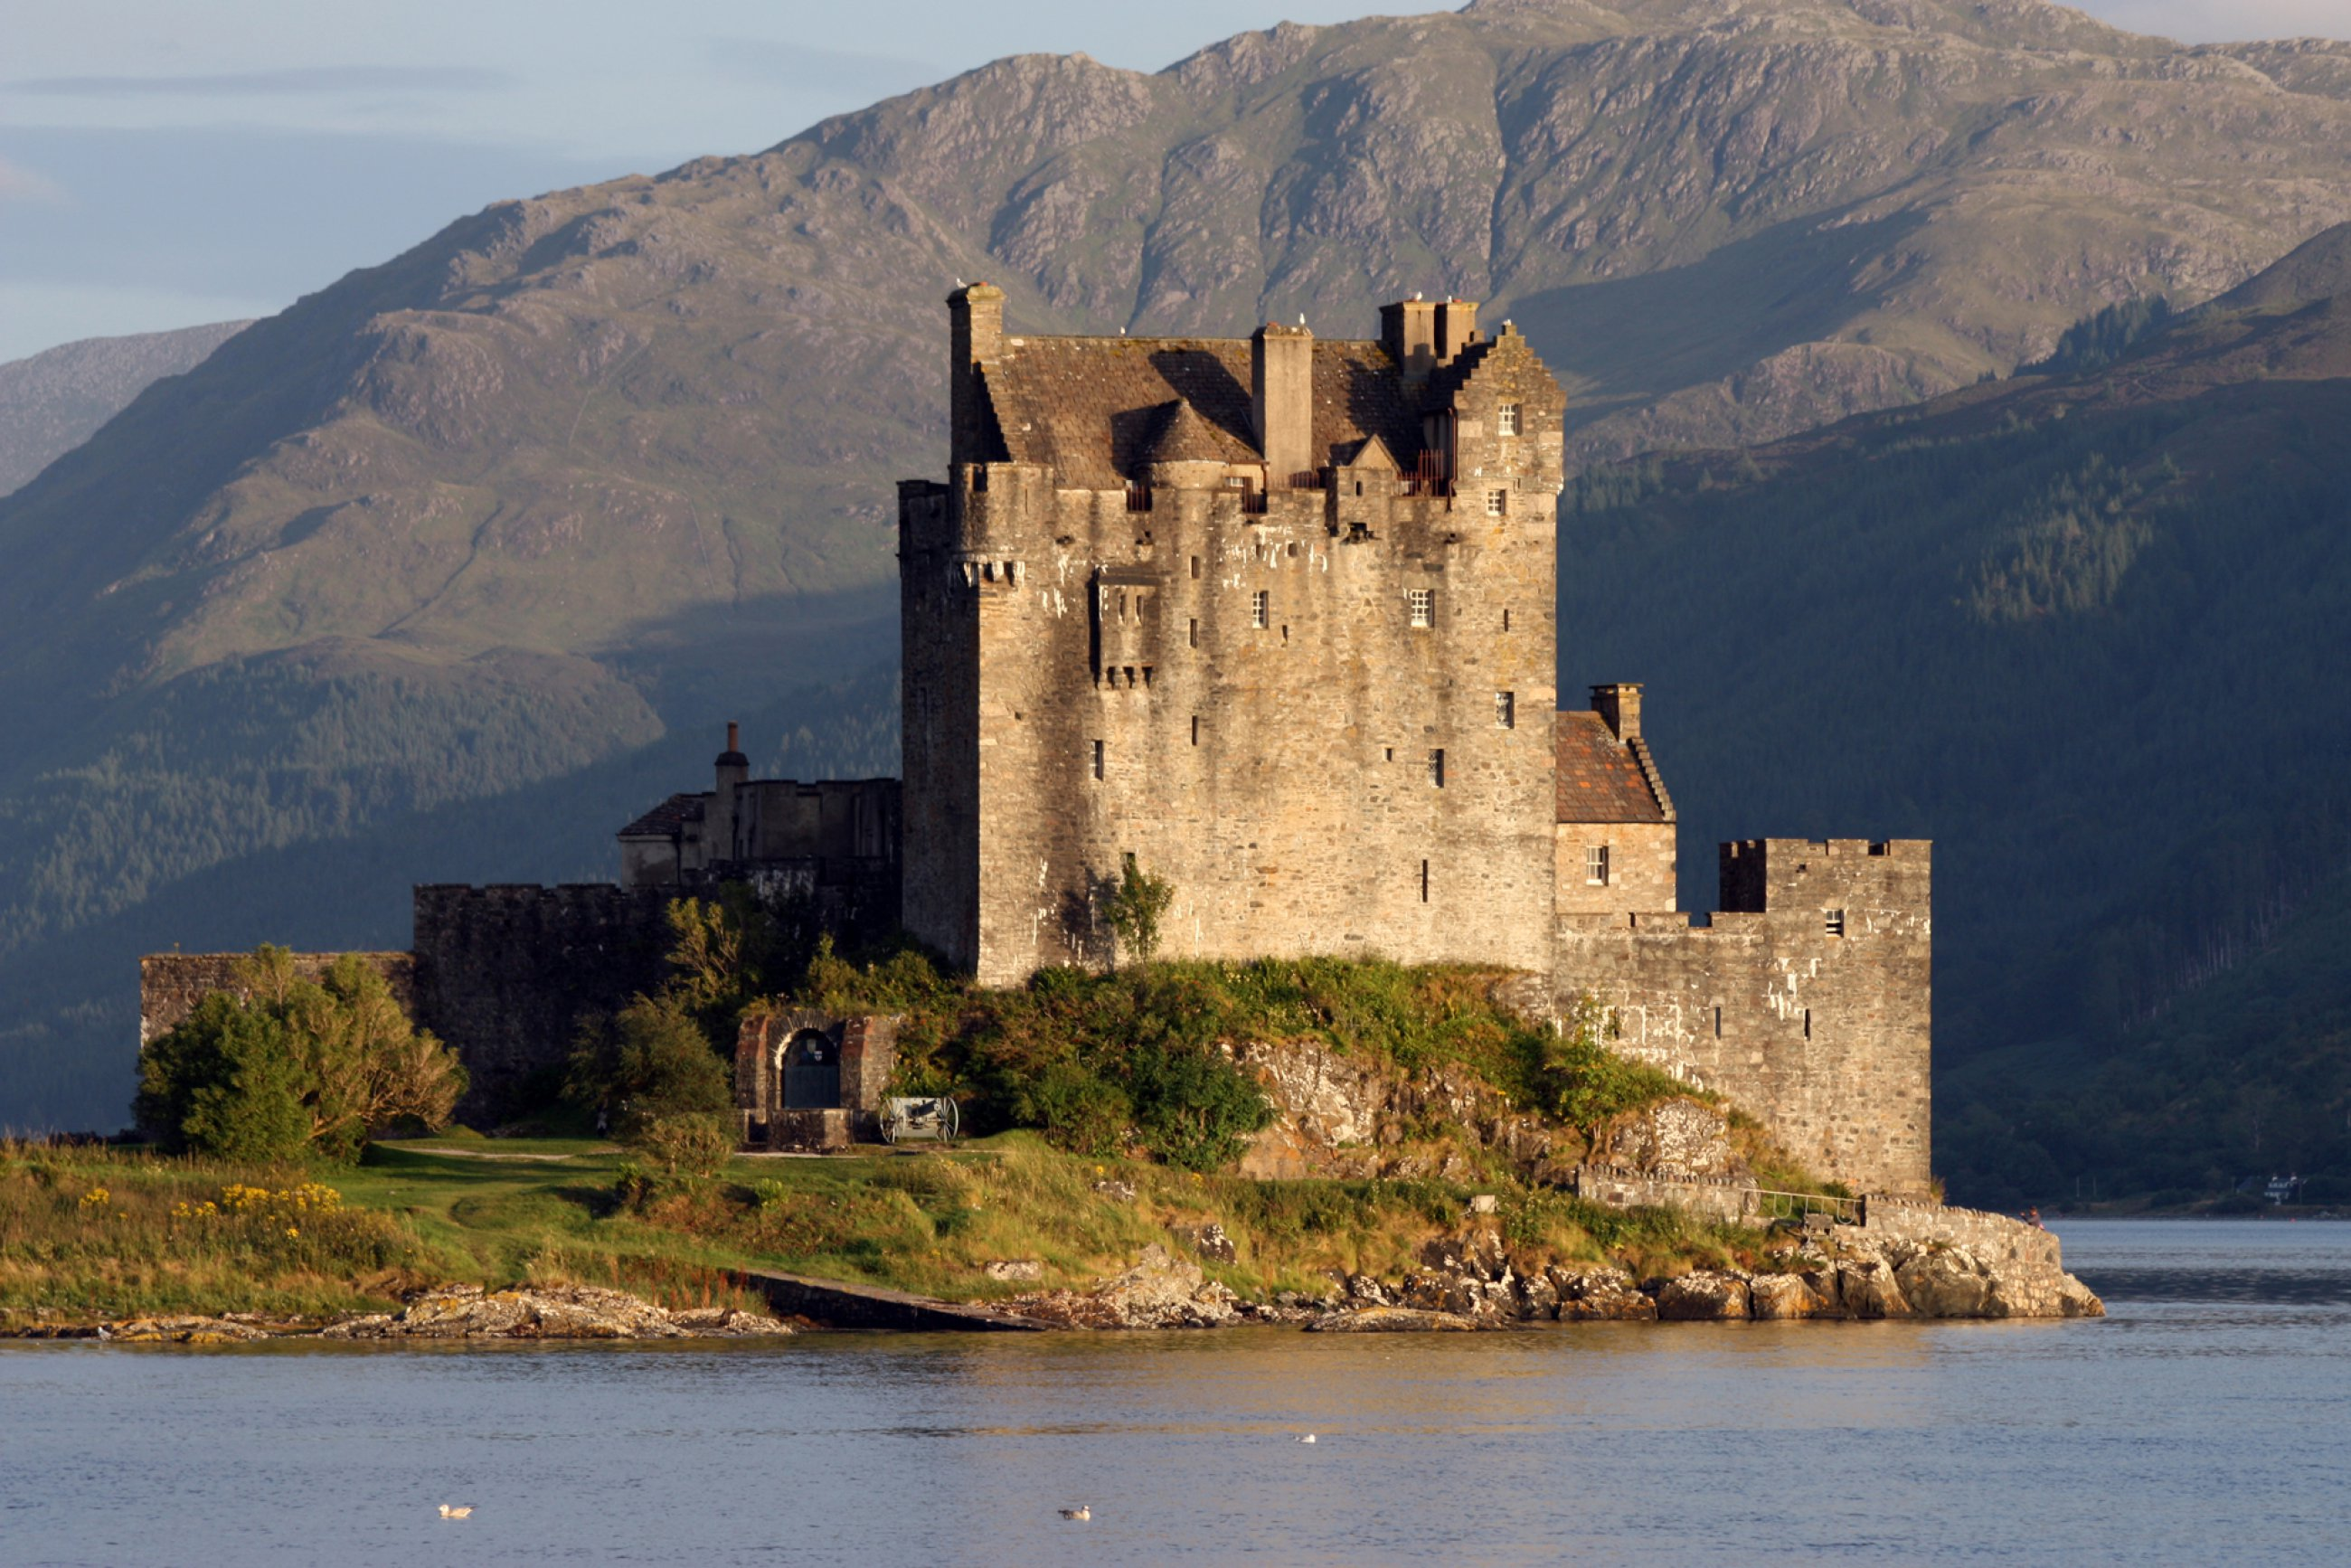 https://bubo.sk/uploads/galleries/5046/wikipedia-eilean-donan-castle-140mm.jpg